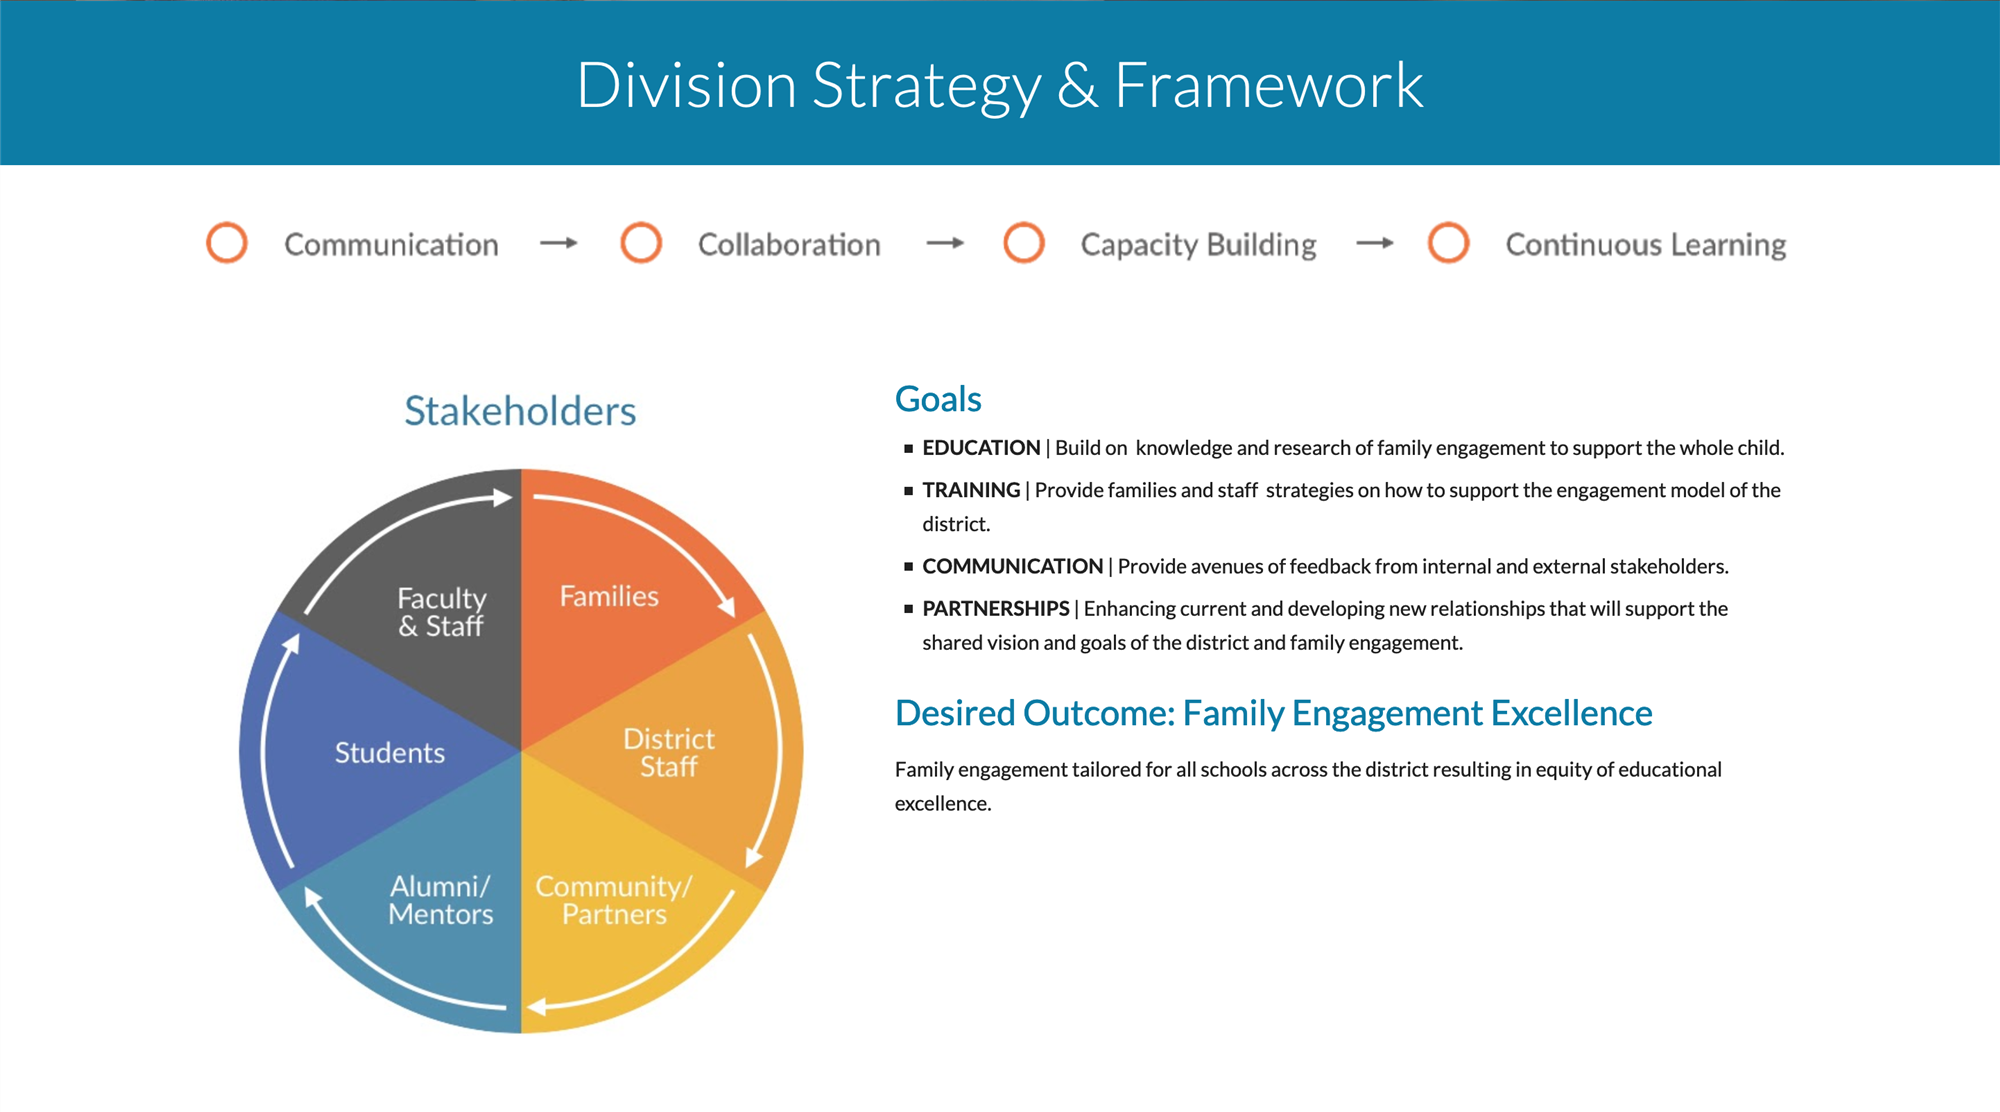 Division Strategy & Framework